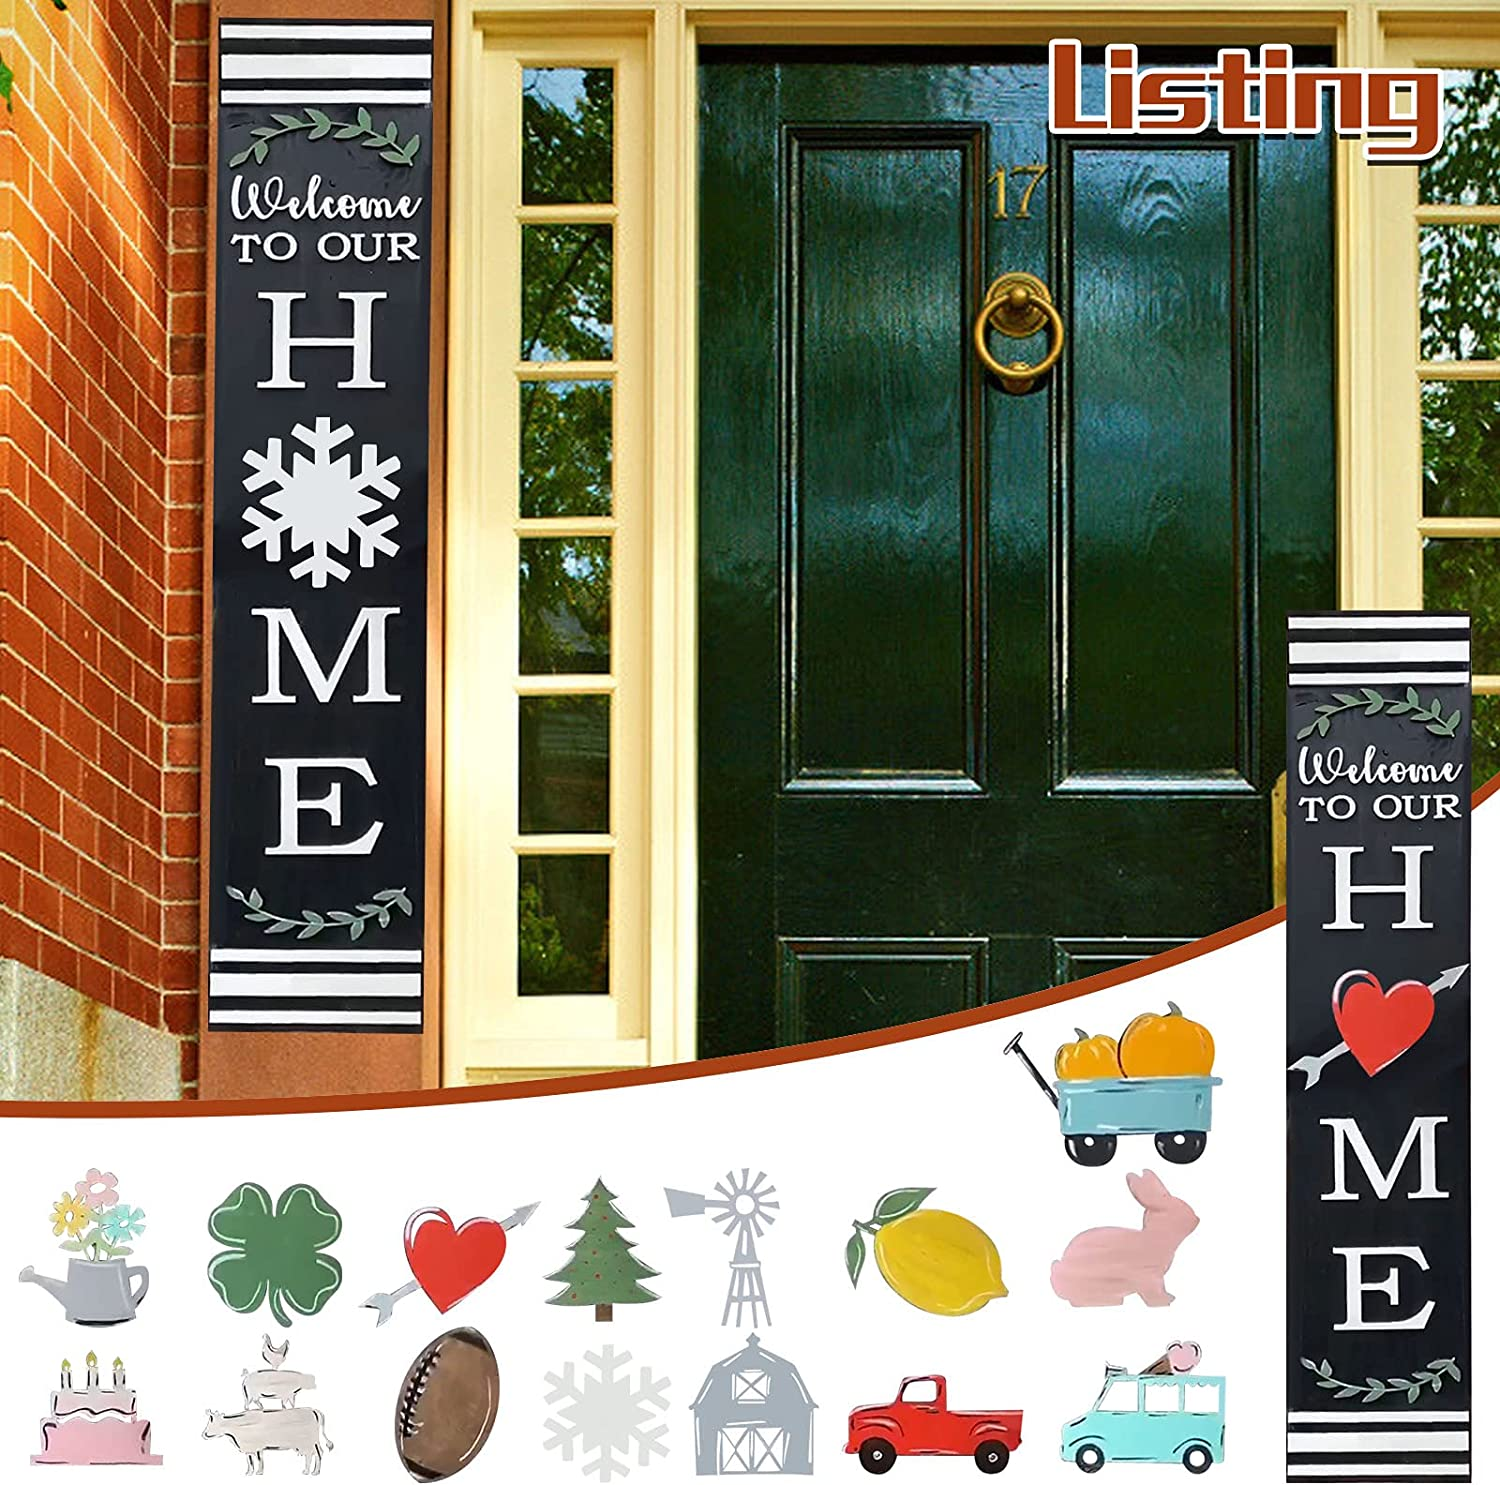 Painted Home Leaner, wellcome to our home Interchangeable Leaner Welcome Sign Front Door Hanger Rustic Wooden Door Hangers Front Porch Decor Hanging Vertical Sign Porch Decorations for Housewarming (A)